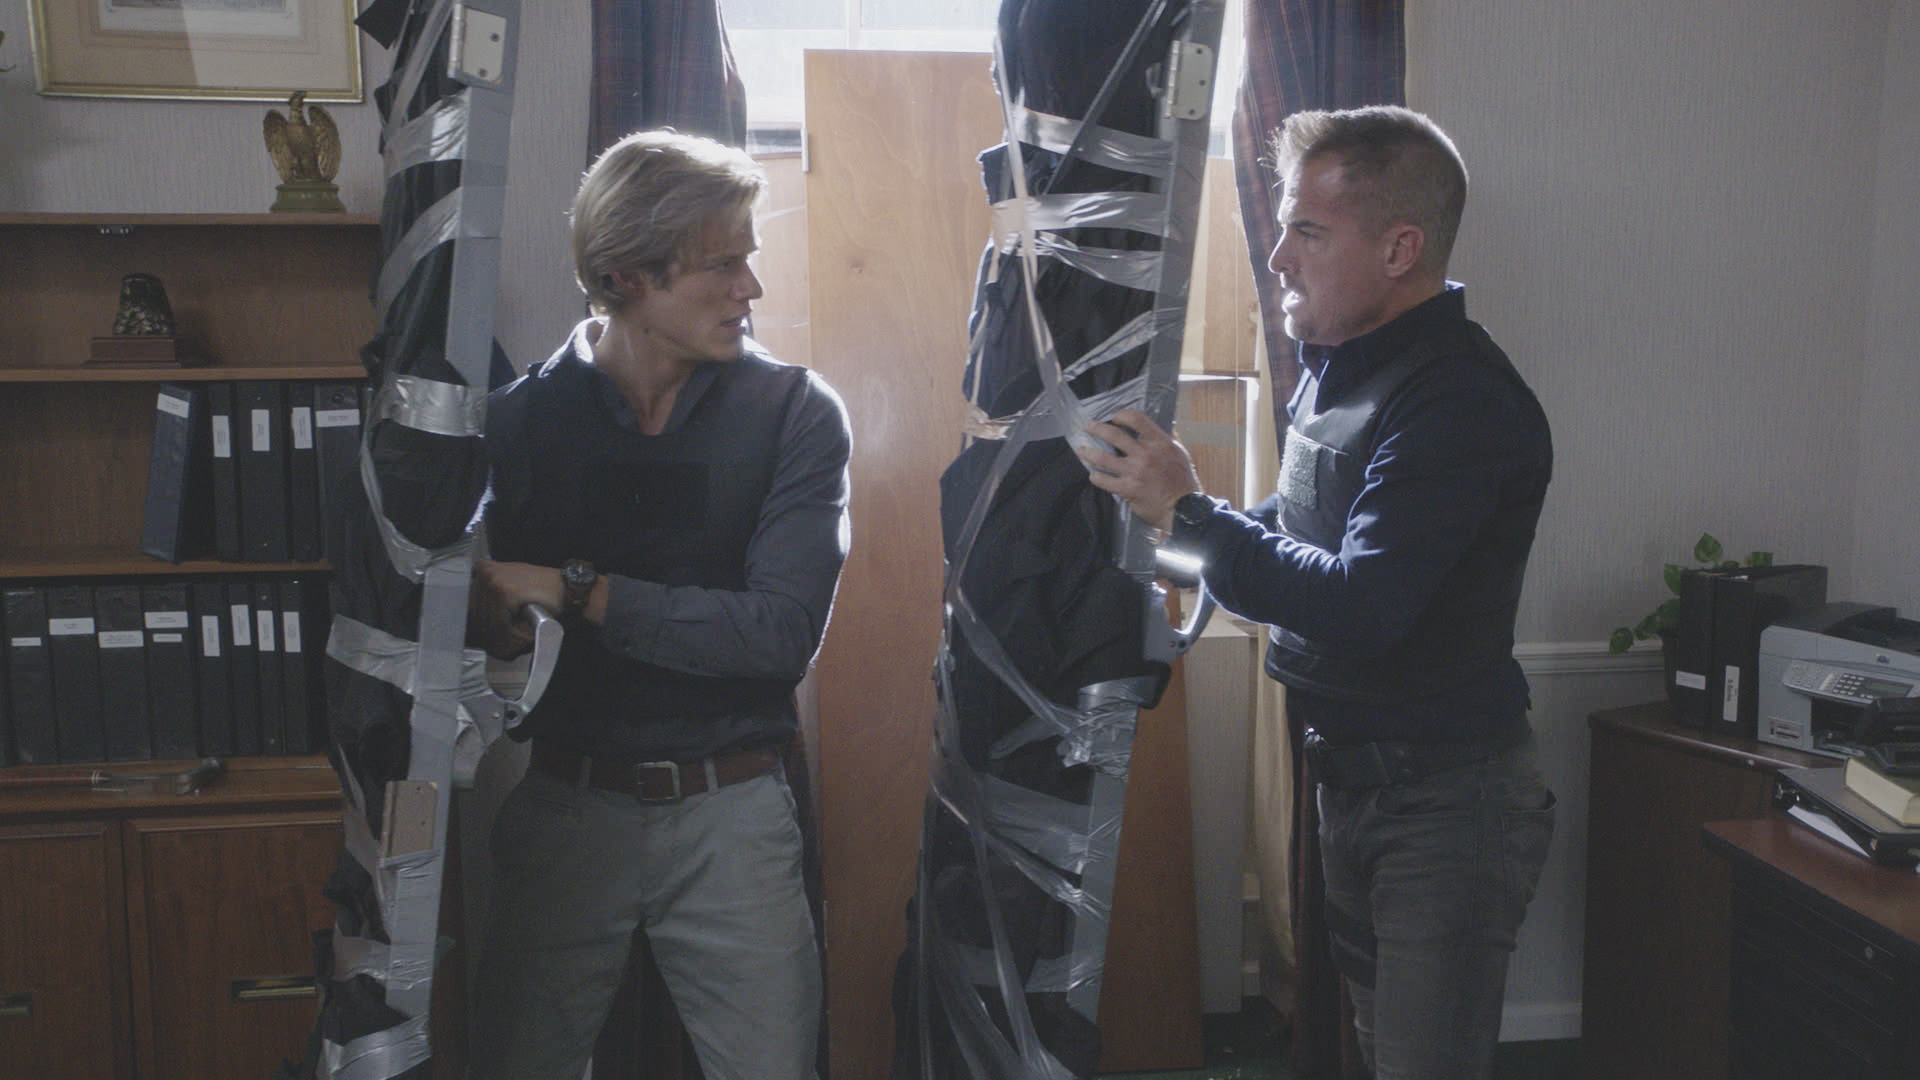 MacGyver and Jack work their way around some duct tape.